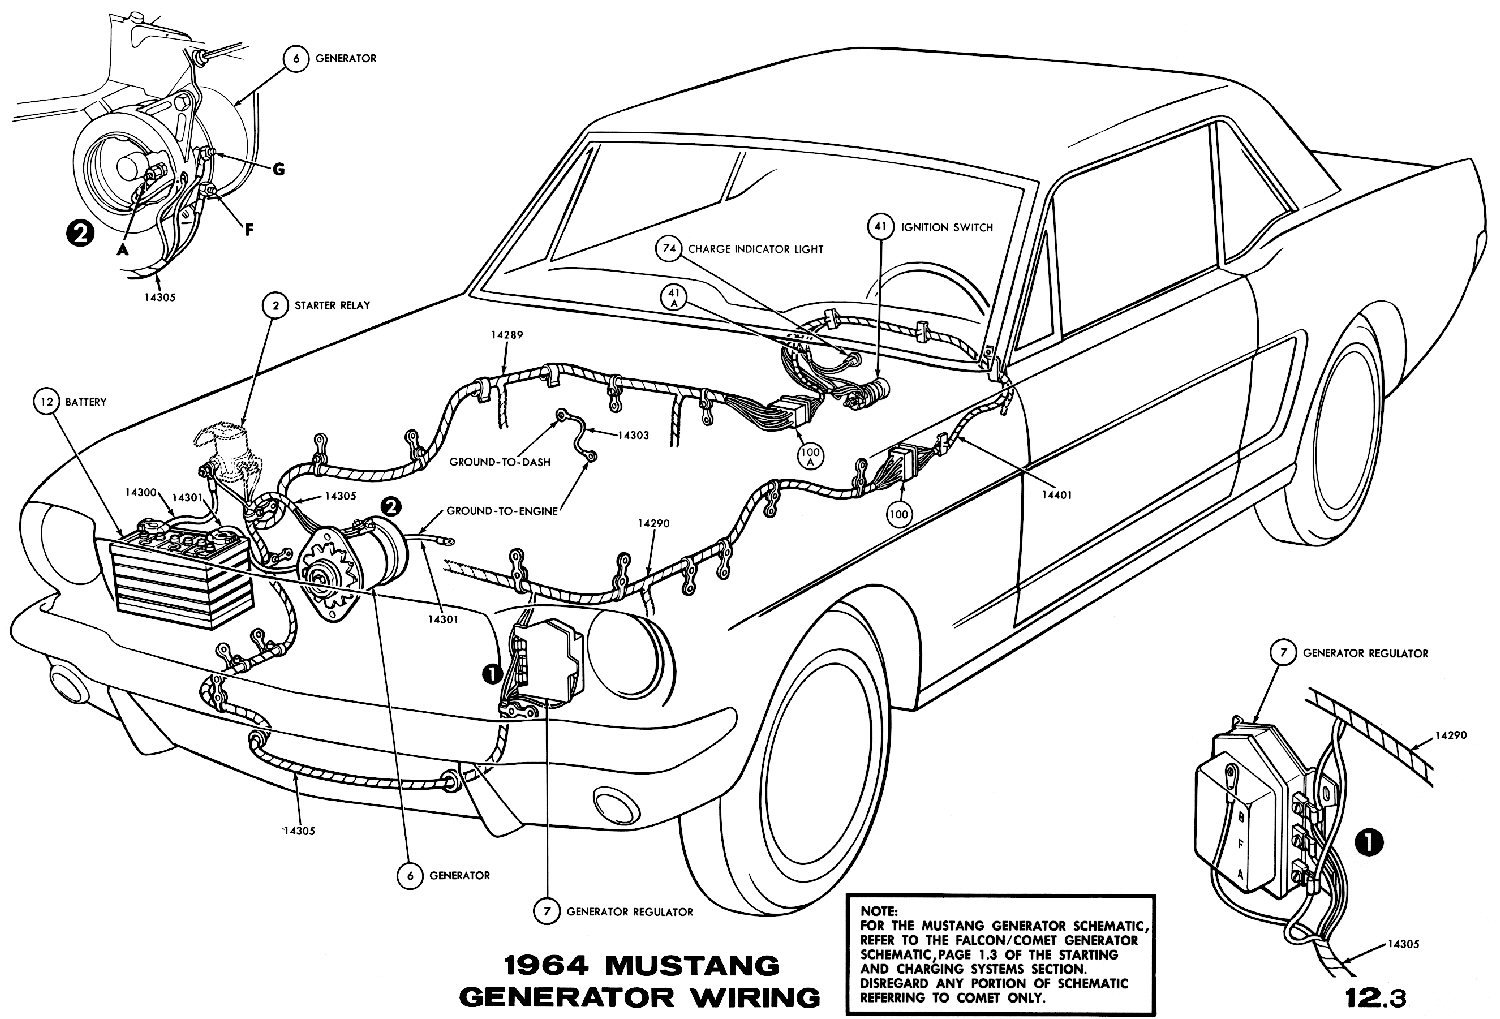 1964f 1966 mustang wiring diagram 1966 mustang ignition wiring diagram wiring harness 1964 mustang at bayanpartner.co